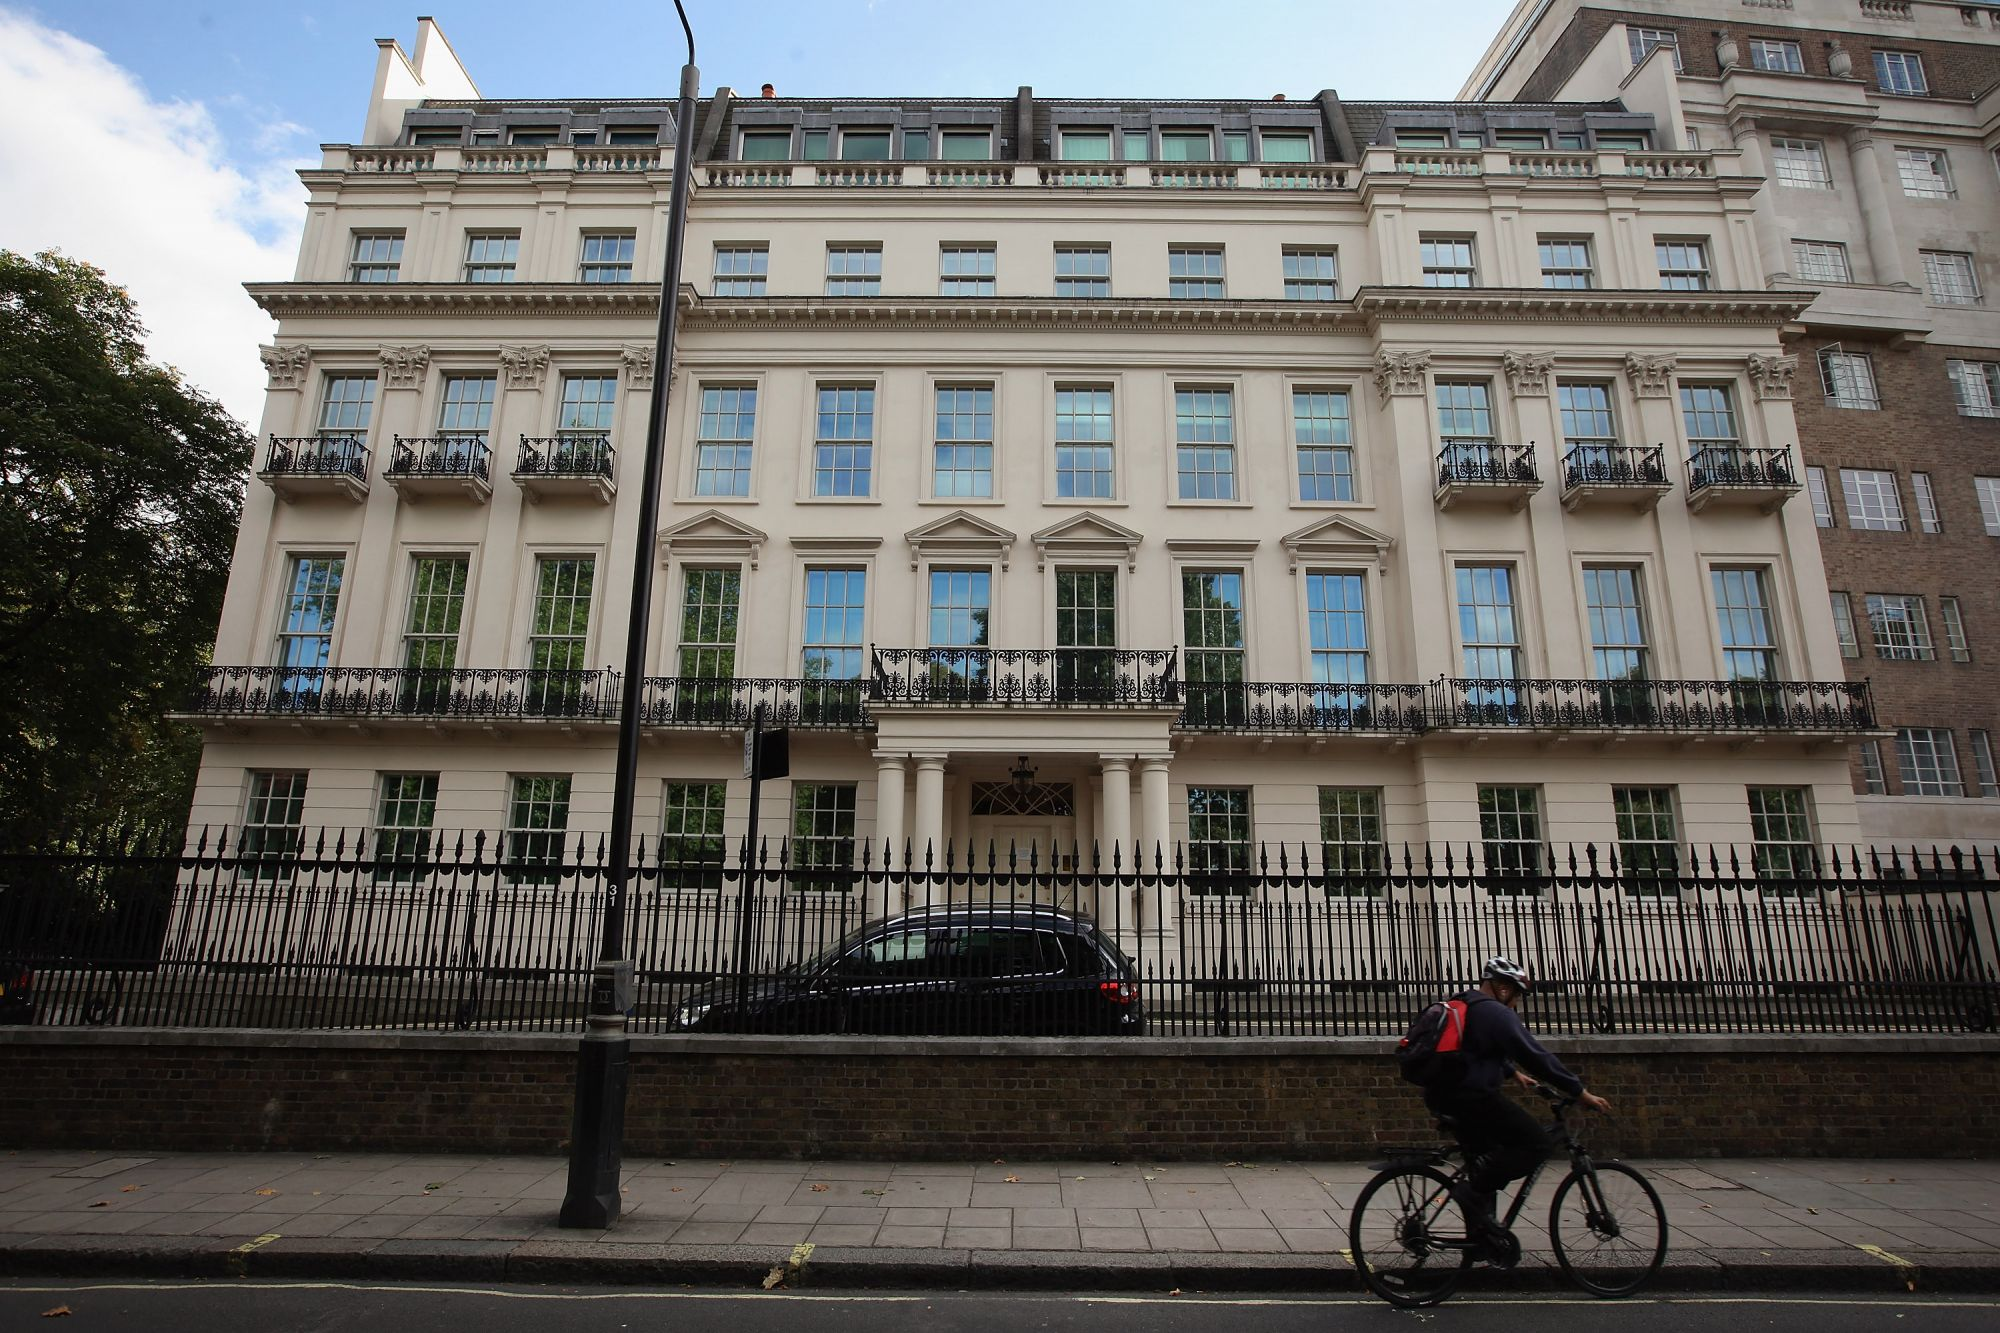 Hong Kong Tycoon Cheung Chung Kiu Snaps Up London S Most Expensive Home For Hk 2 1 Billion Tatler Hong Kong